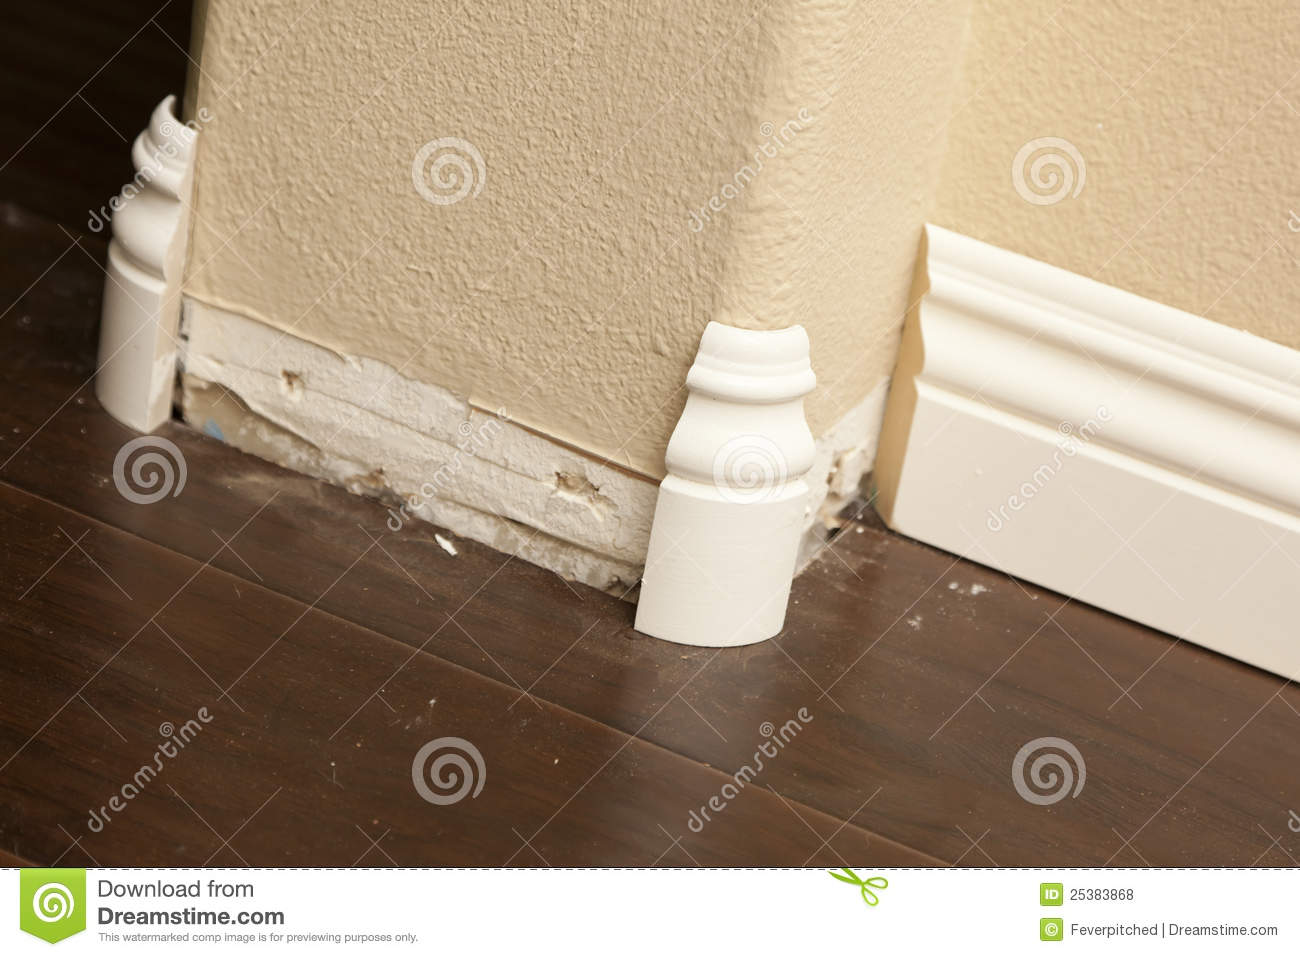 New Baseboard And Bull Nose Corners With Laminate Flooring